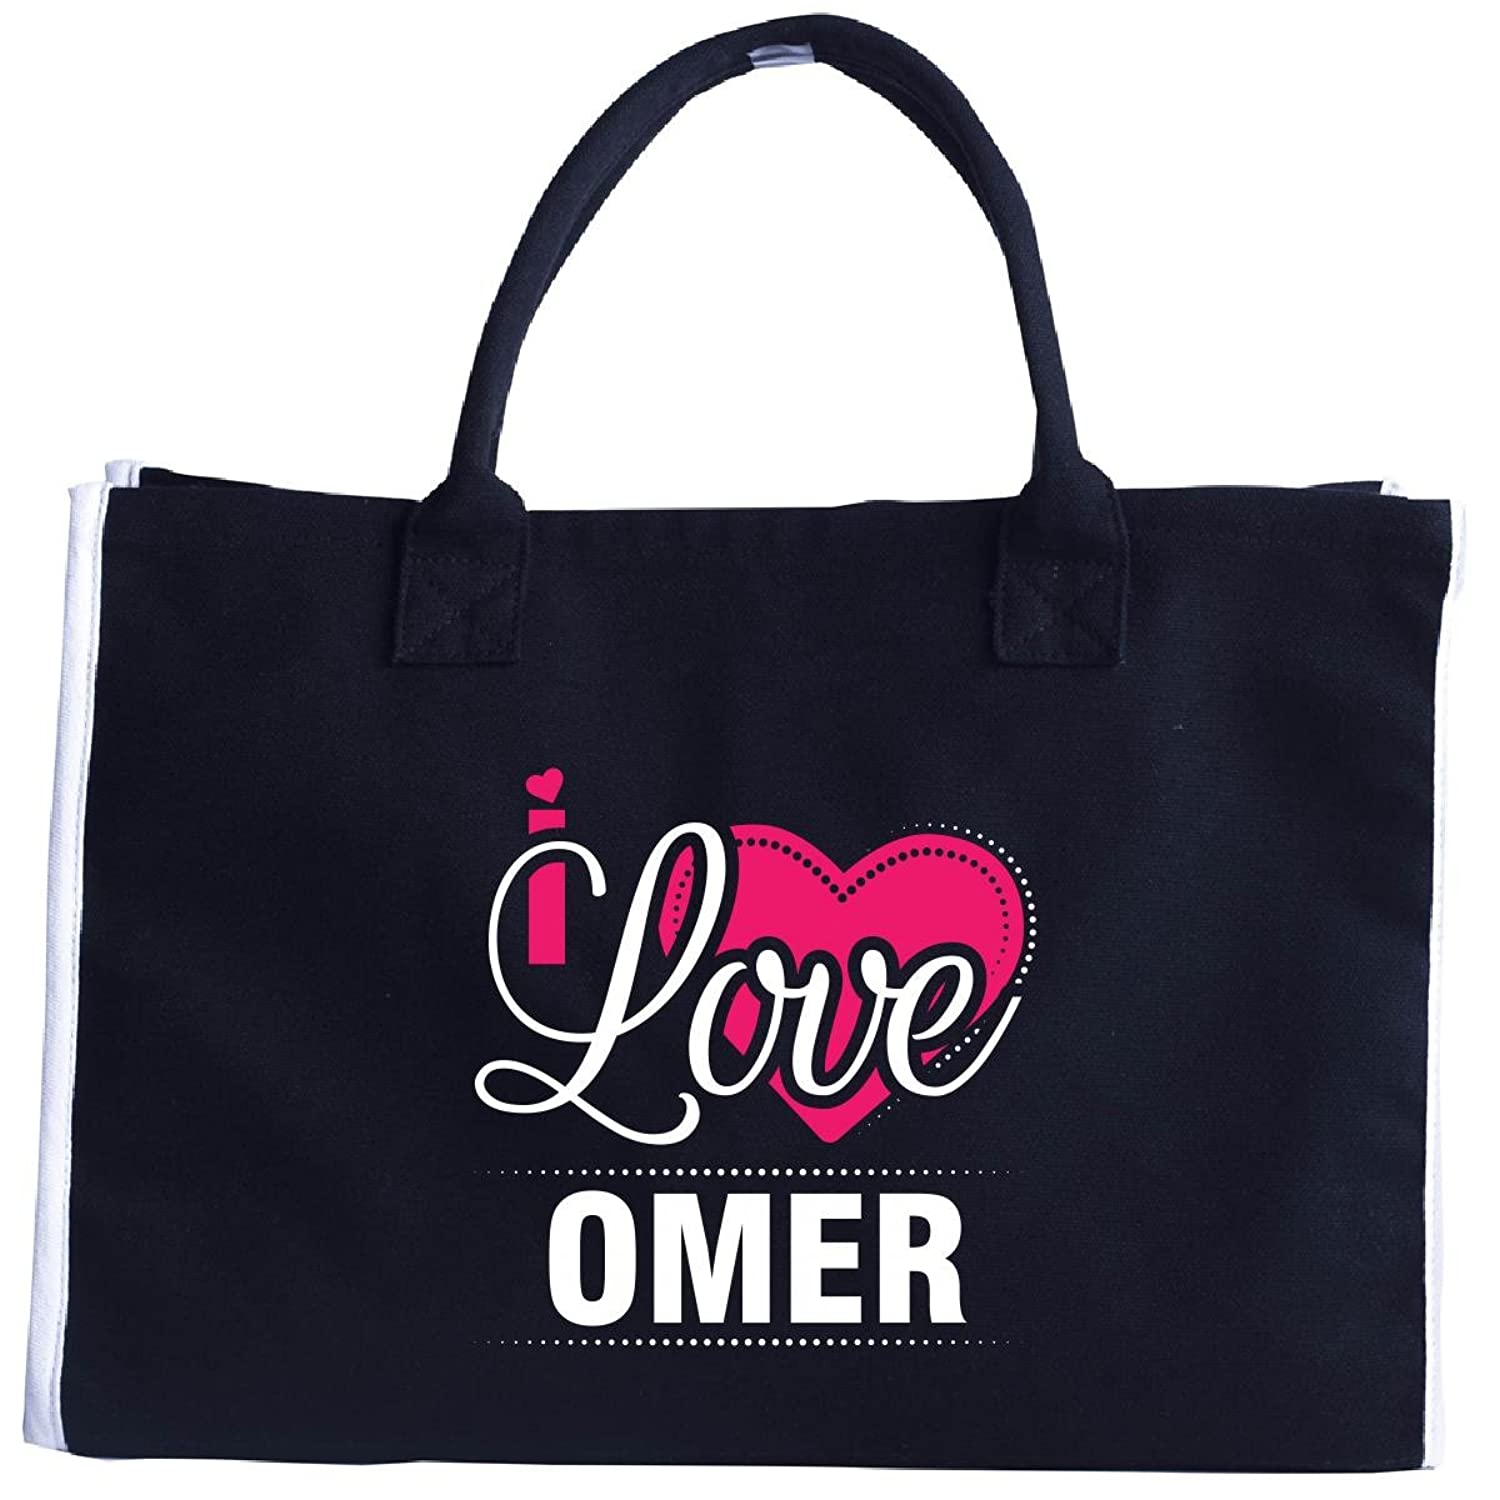 I Love Omer - Cool Gift For Omer From Girlfriend - Tote Bag